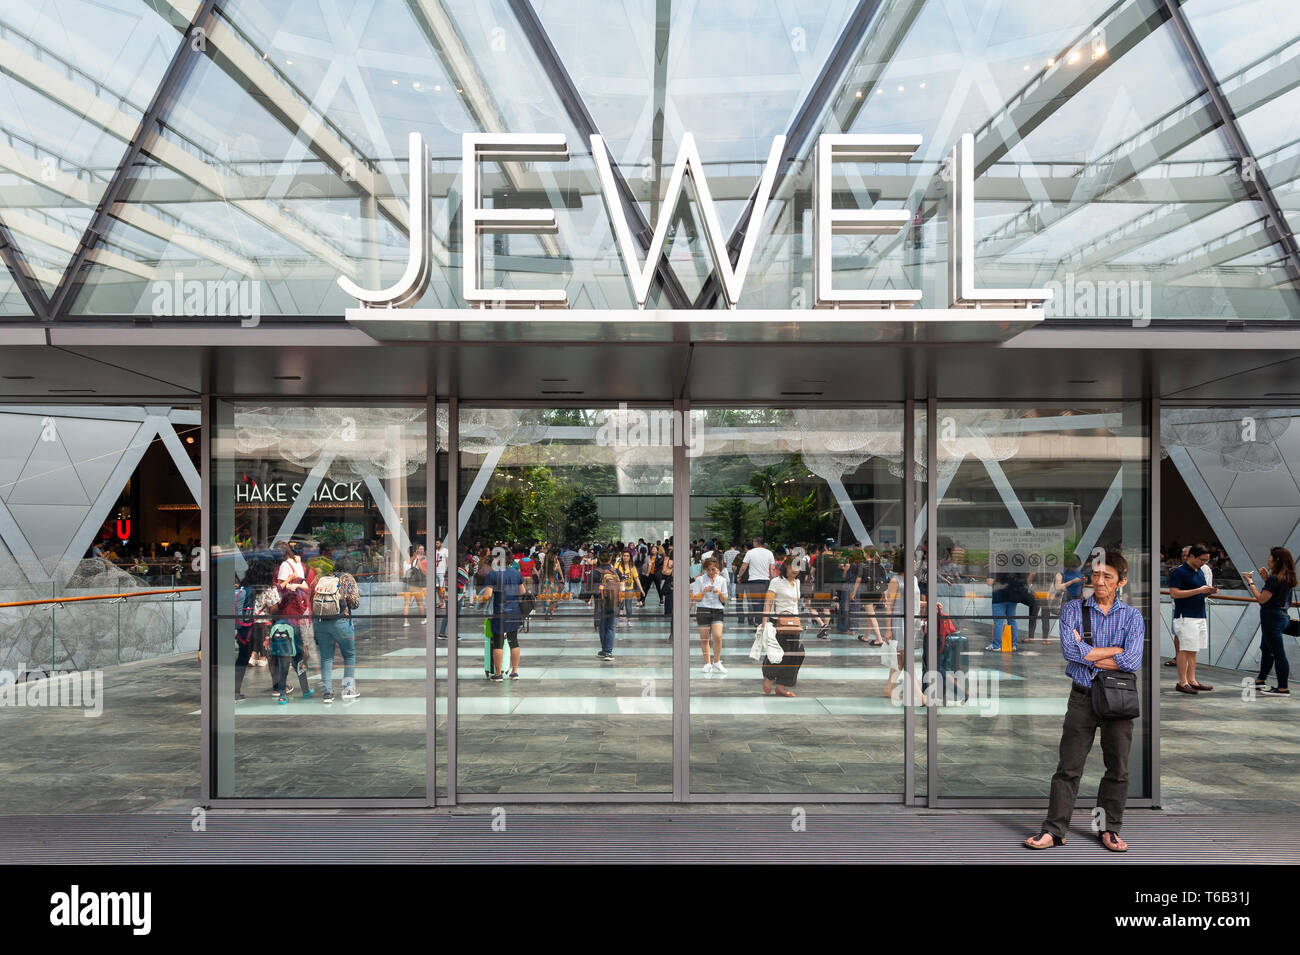 28.04.2019, Singapore, Republic of Singapore, Asia - A man is waiting at the entrance to the new Jewel Terminal at Changi Airport. - Stock Image